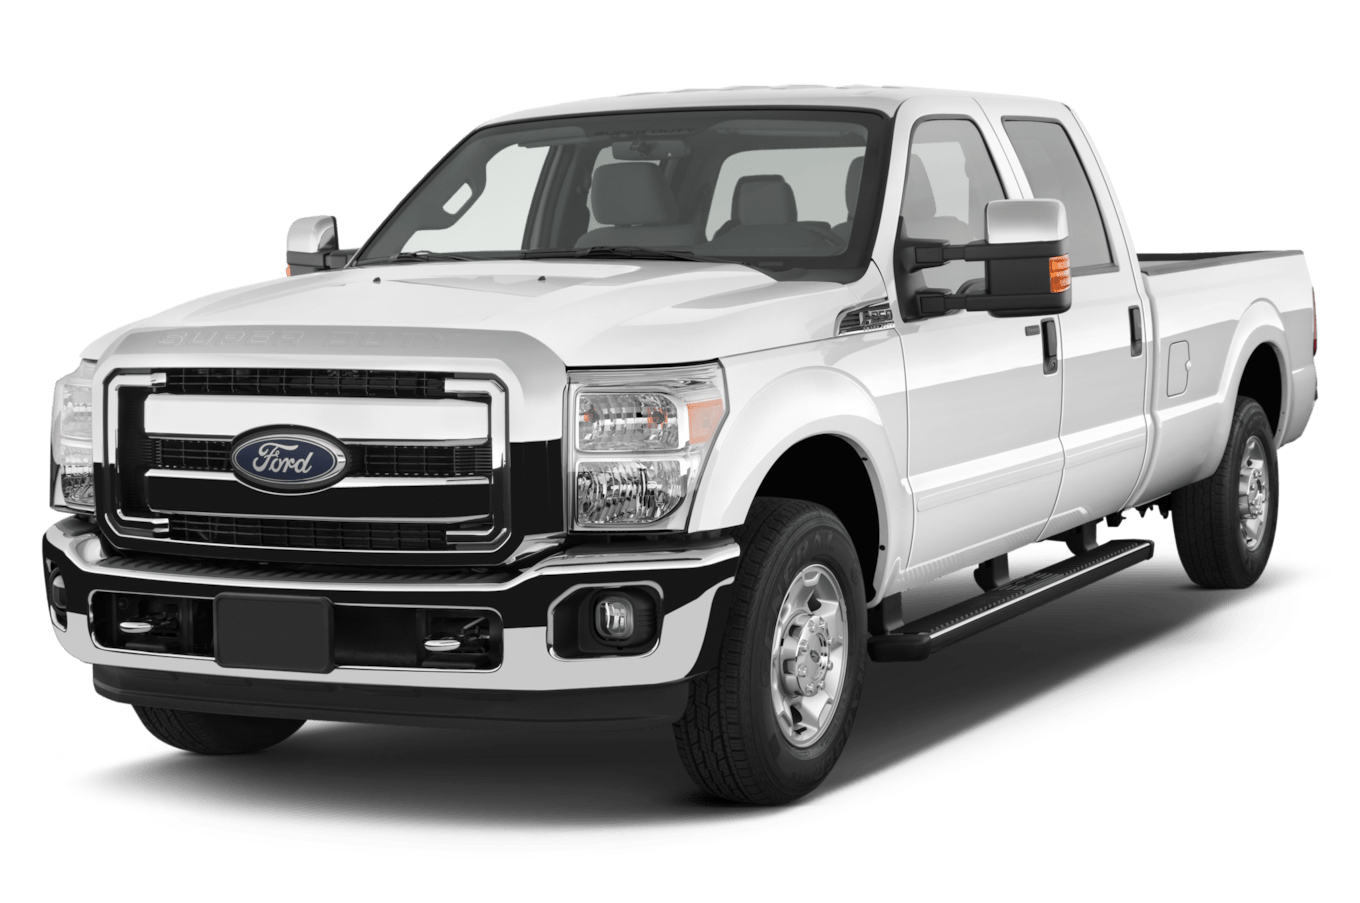 2012 ford f 250 reviews research f 250 prices specs 2012 ford f250 4x4 transmission wiring harness [ 392:261 x 1360 Pixel ]